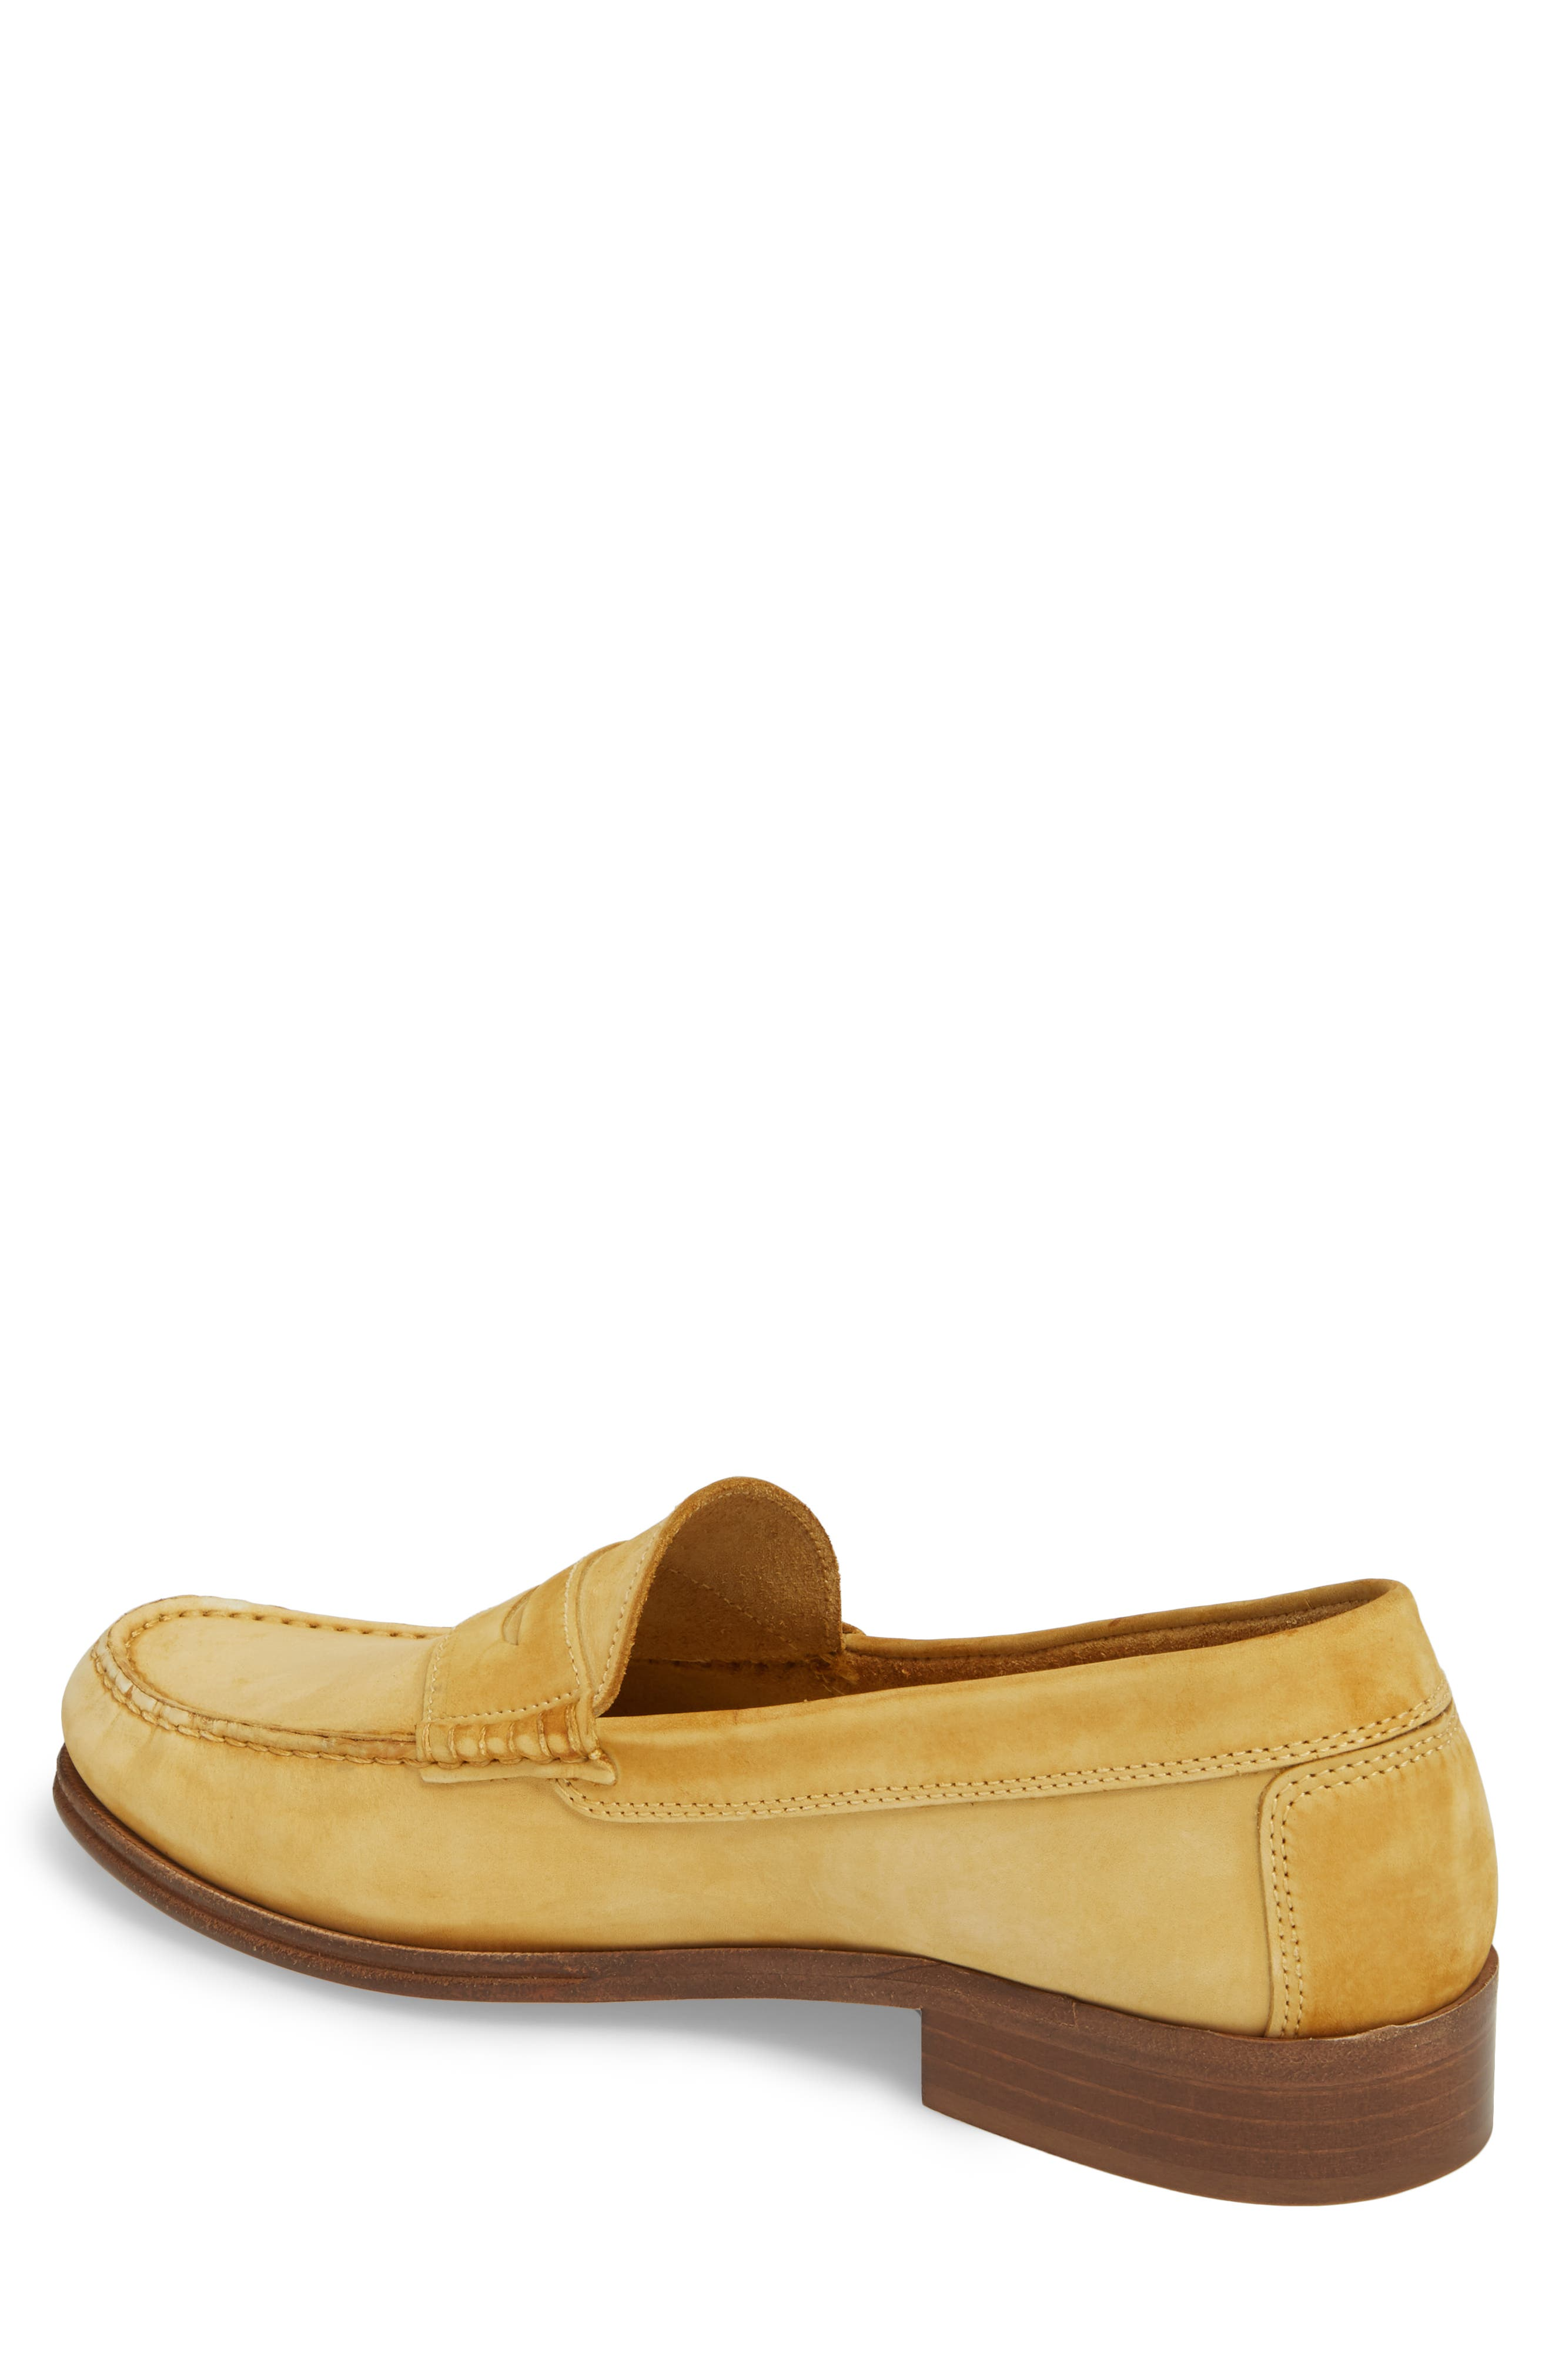 Nicola Penny Loafer,                             Alternate thumbnail 13, color,